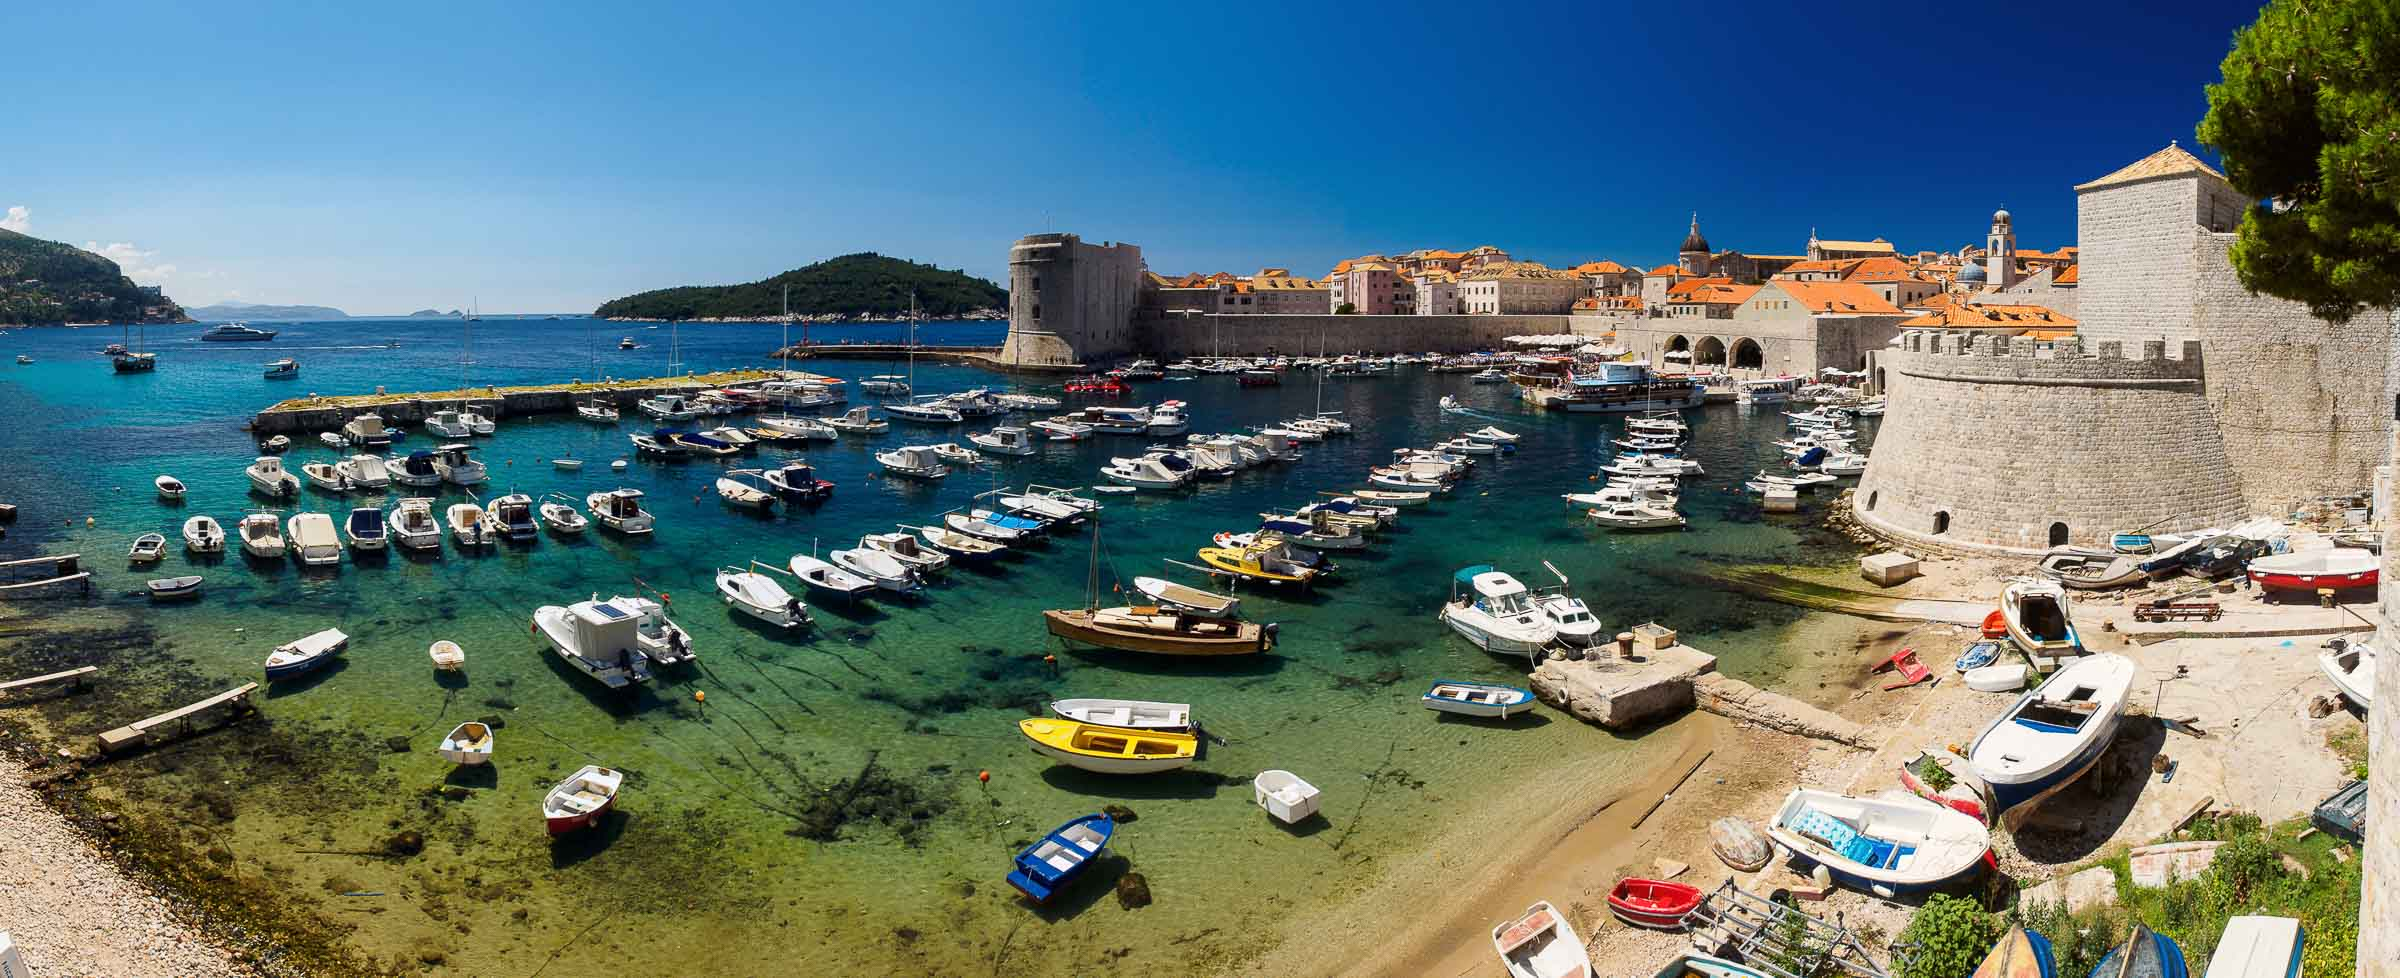 Dubrovnik view over Harbour, Croatia